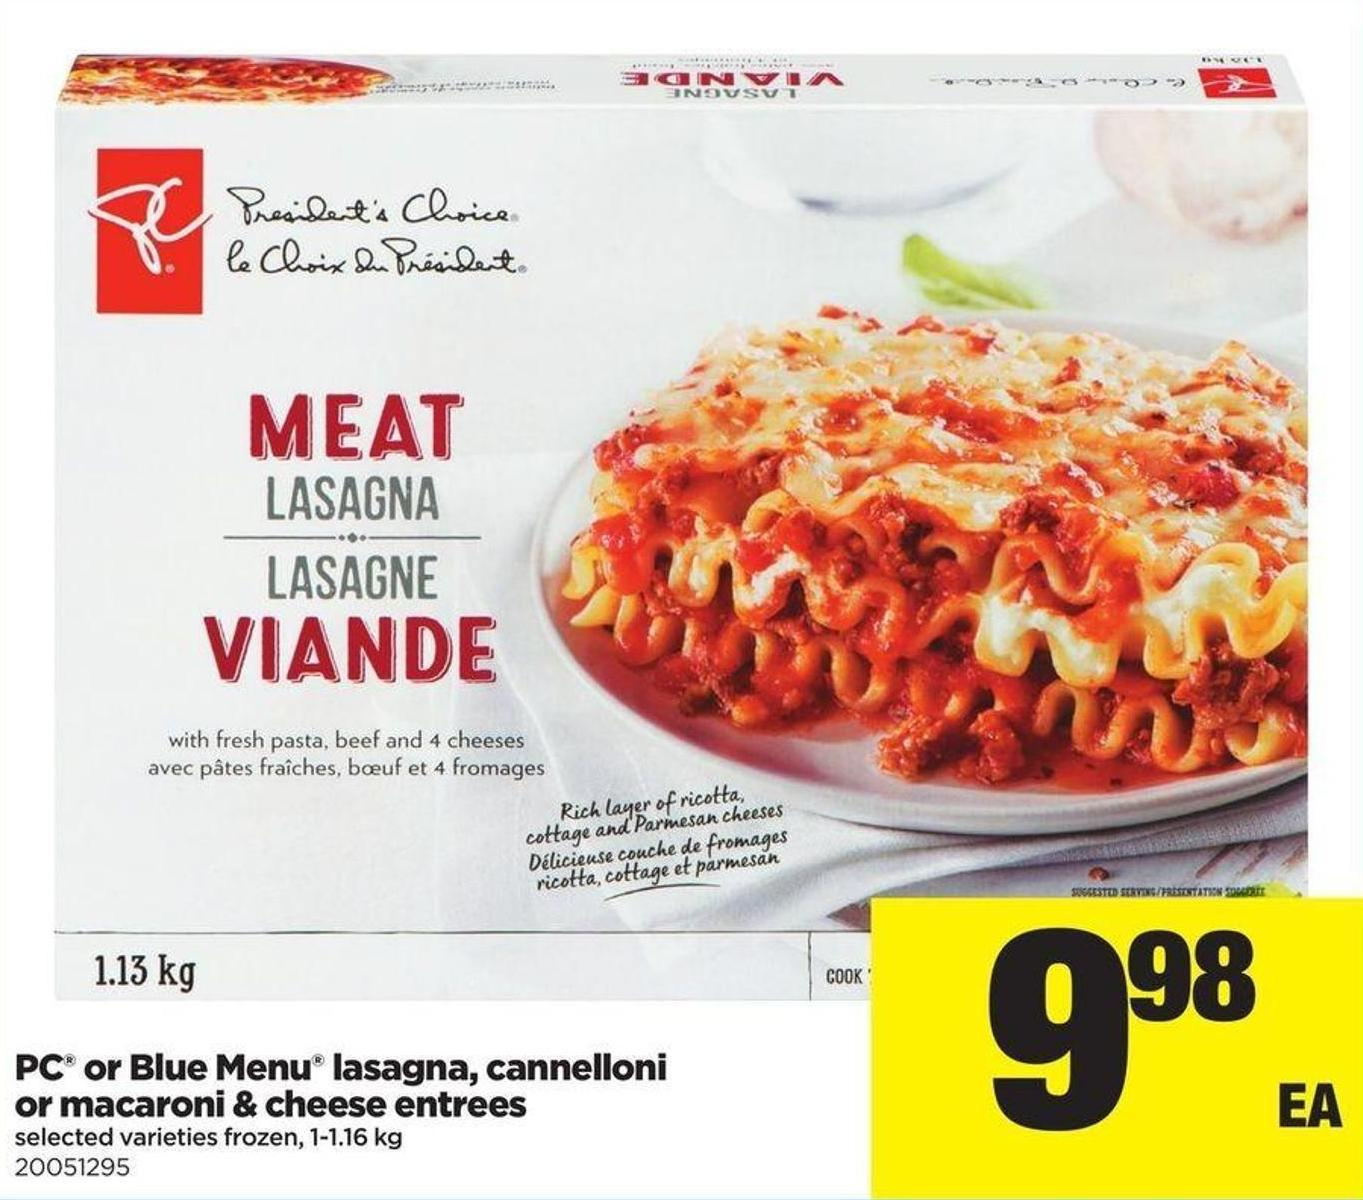 PC Or Blue Menu Lasagna - Cannelloni Or Macaroni & Cheese Entrees - 1-1.16 Kg